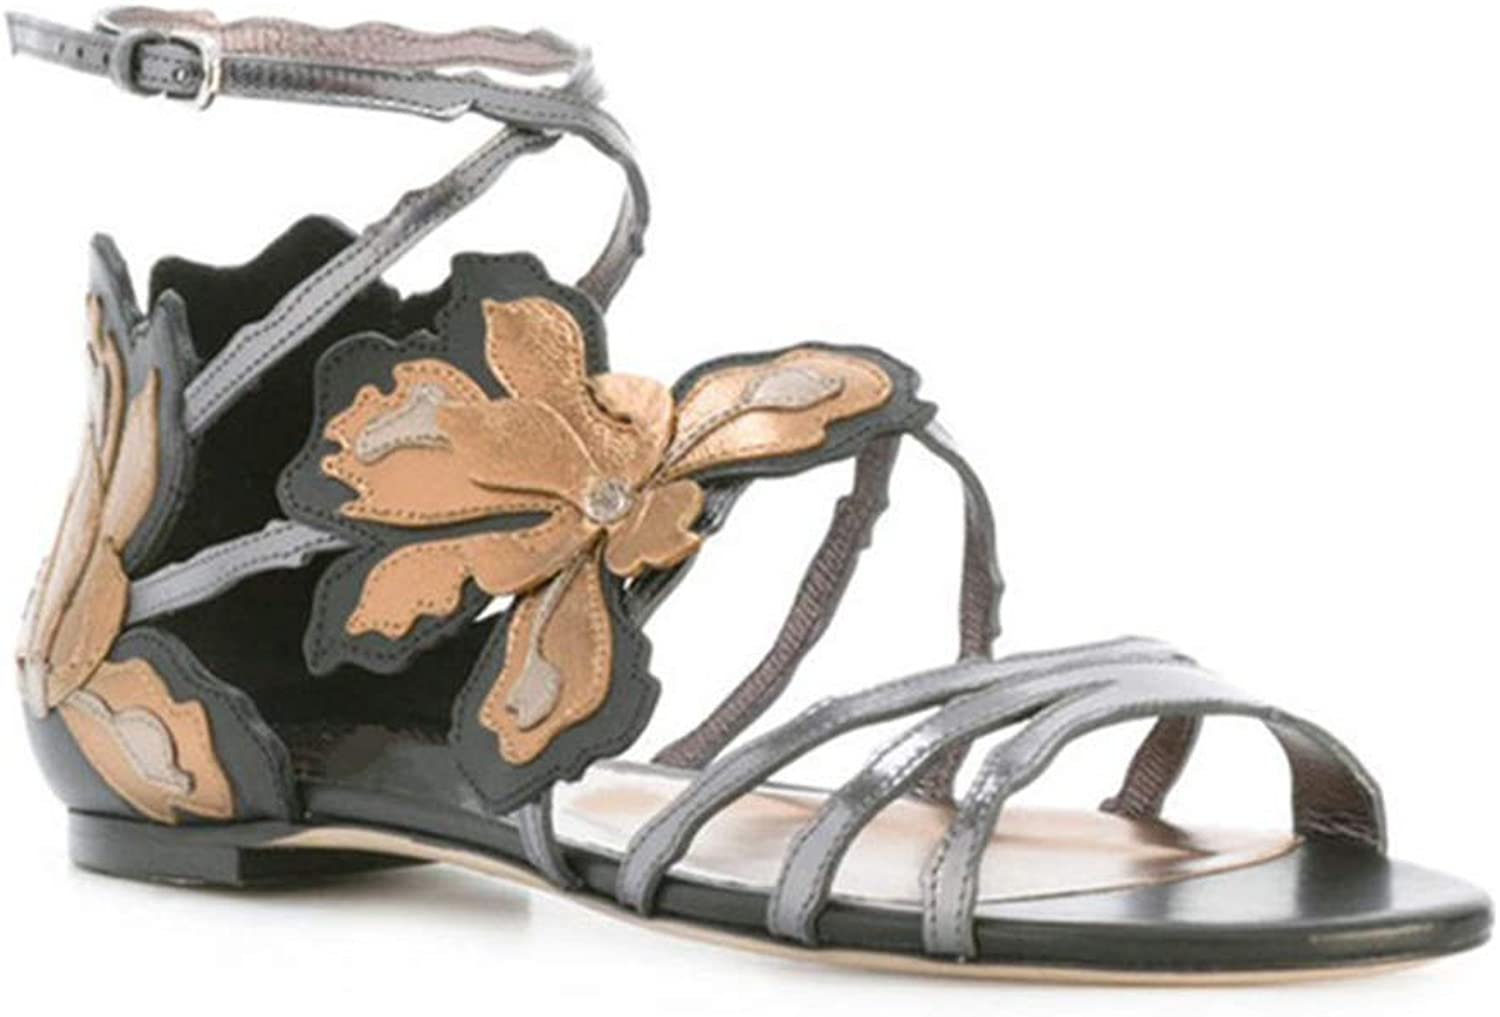 Ladies Sandals Artificial PU Open Toe Bag with Flat Sandals Roman Flowers Decorative Buckle shoes Summer New